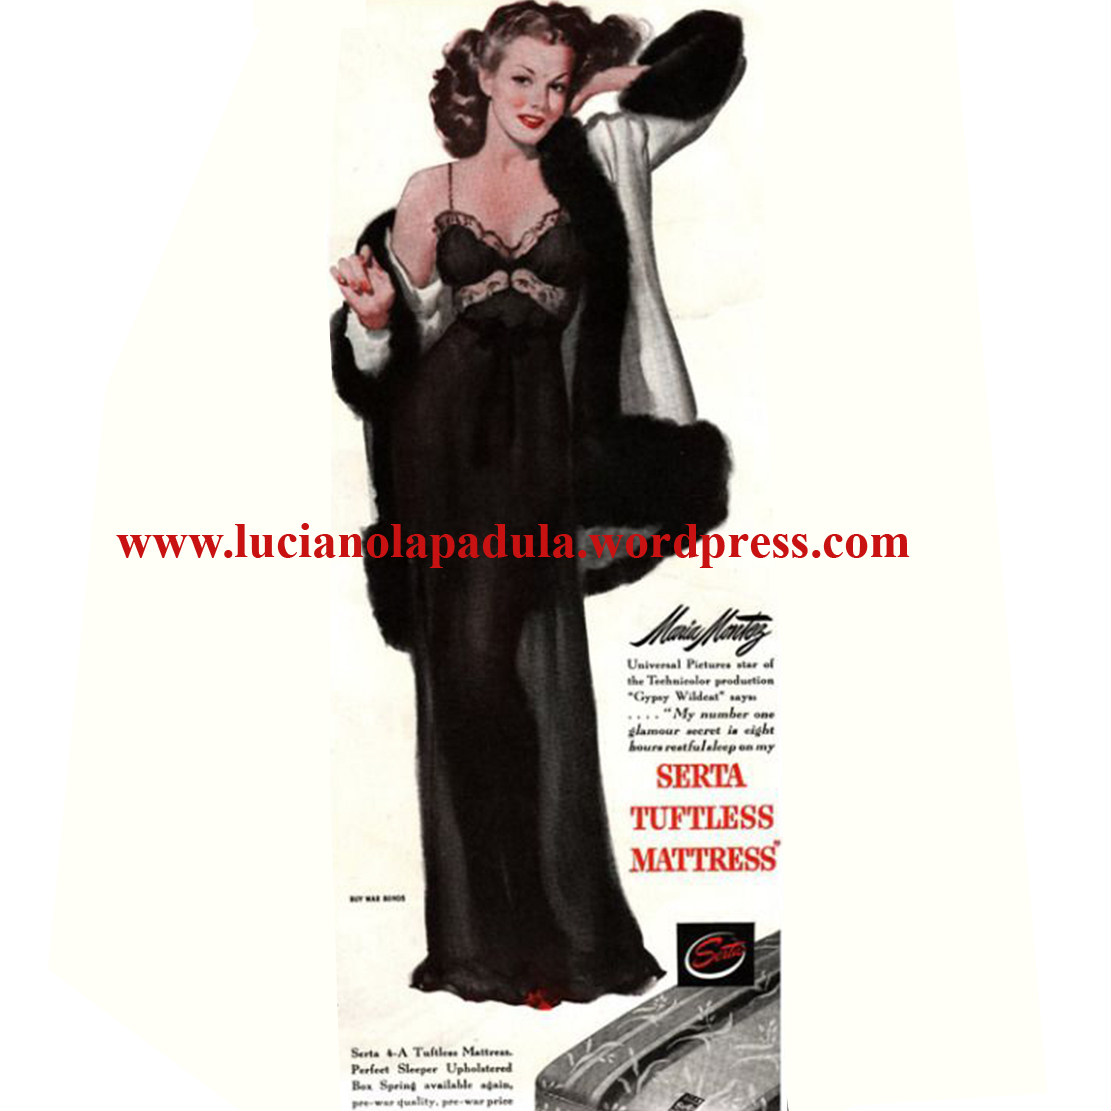 maria montez history fashion cinema luciano lapadula old hollywood blog scrittore blogger moda insegnante historian 1 photography pinup